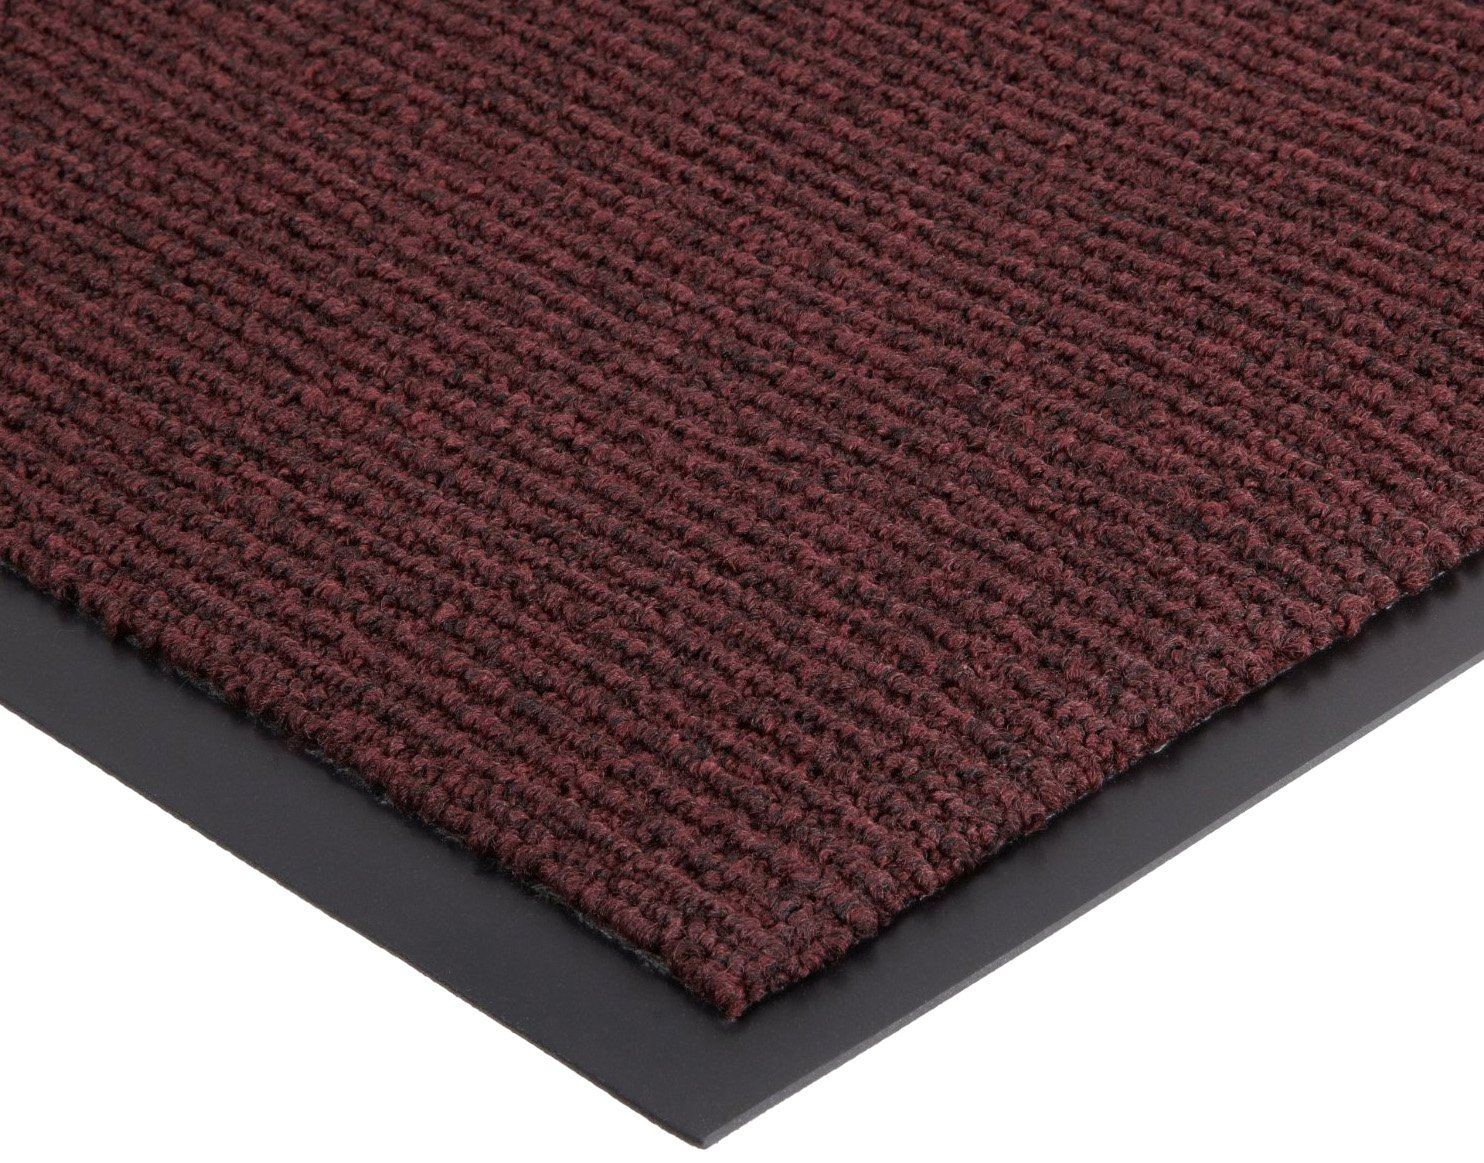 Notrax 132 Estes Entrance Mat, for Main Entranceways and Heavy Traffic Areas, 3' Width x 6' Length x 3/8'' Thickness, Burgundy